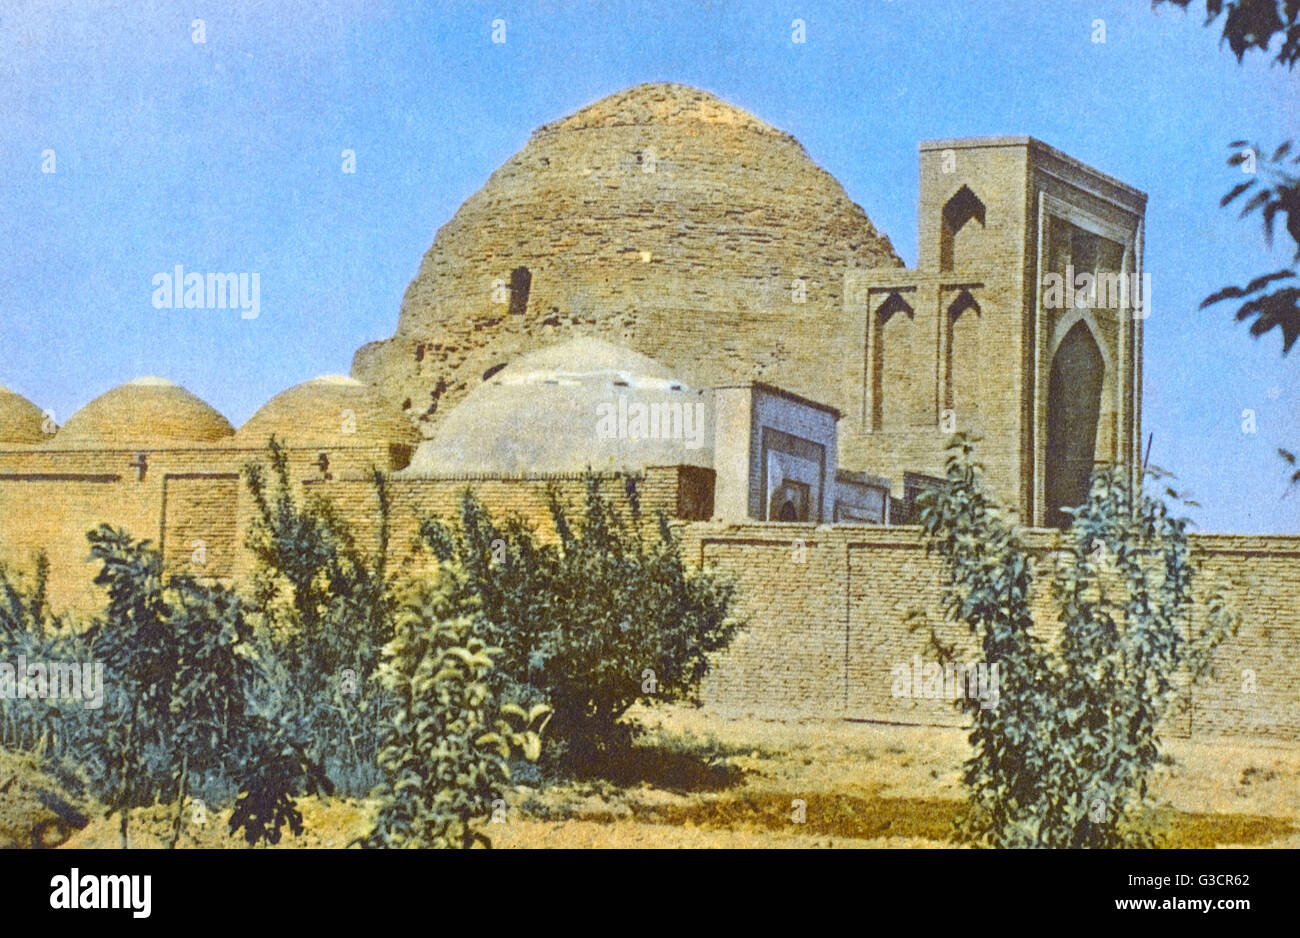 Termez, Uzbekistan - The cult and memorial complex Khakimi at-Termezi developed around the tomb of the scholar and - Stock Image